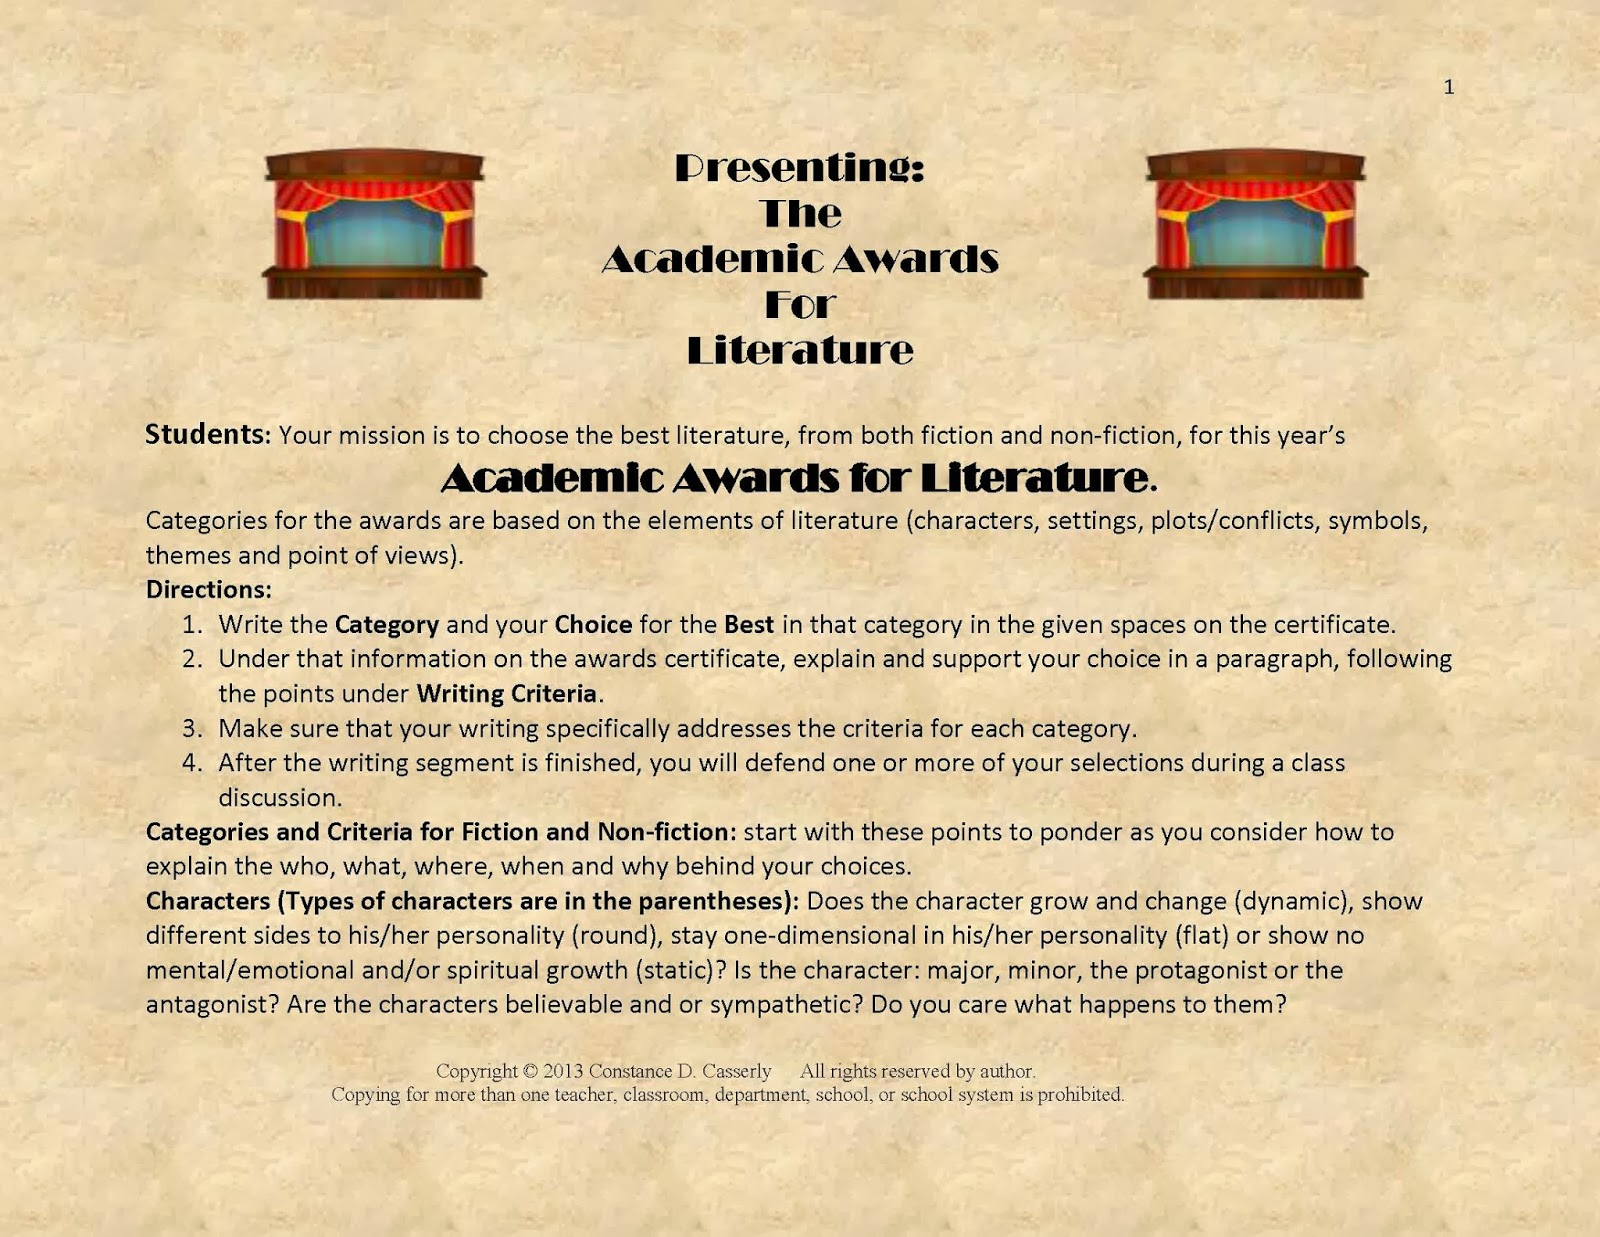 Activity: Presenting the Academic Awards for Literature